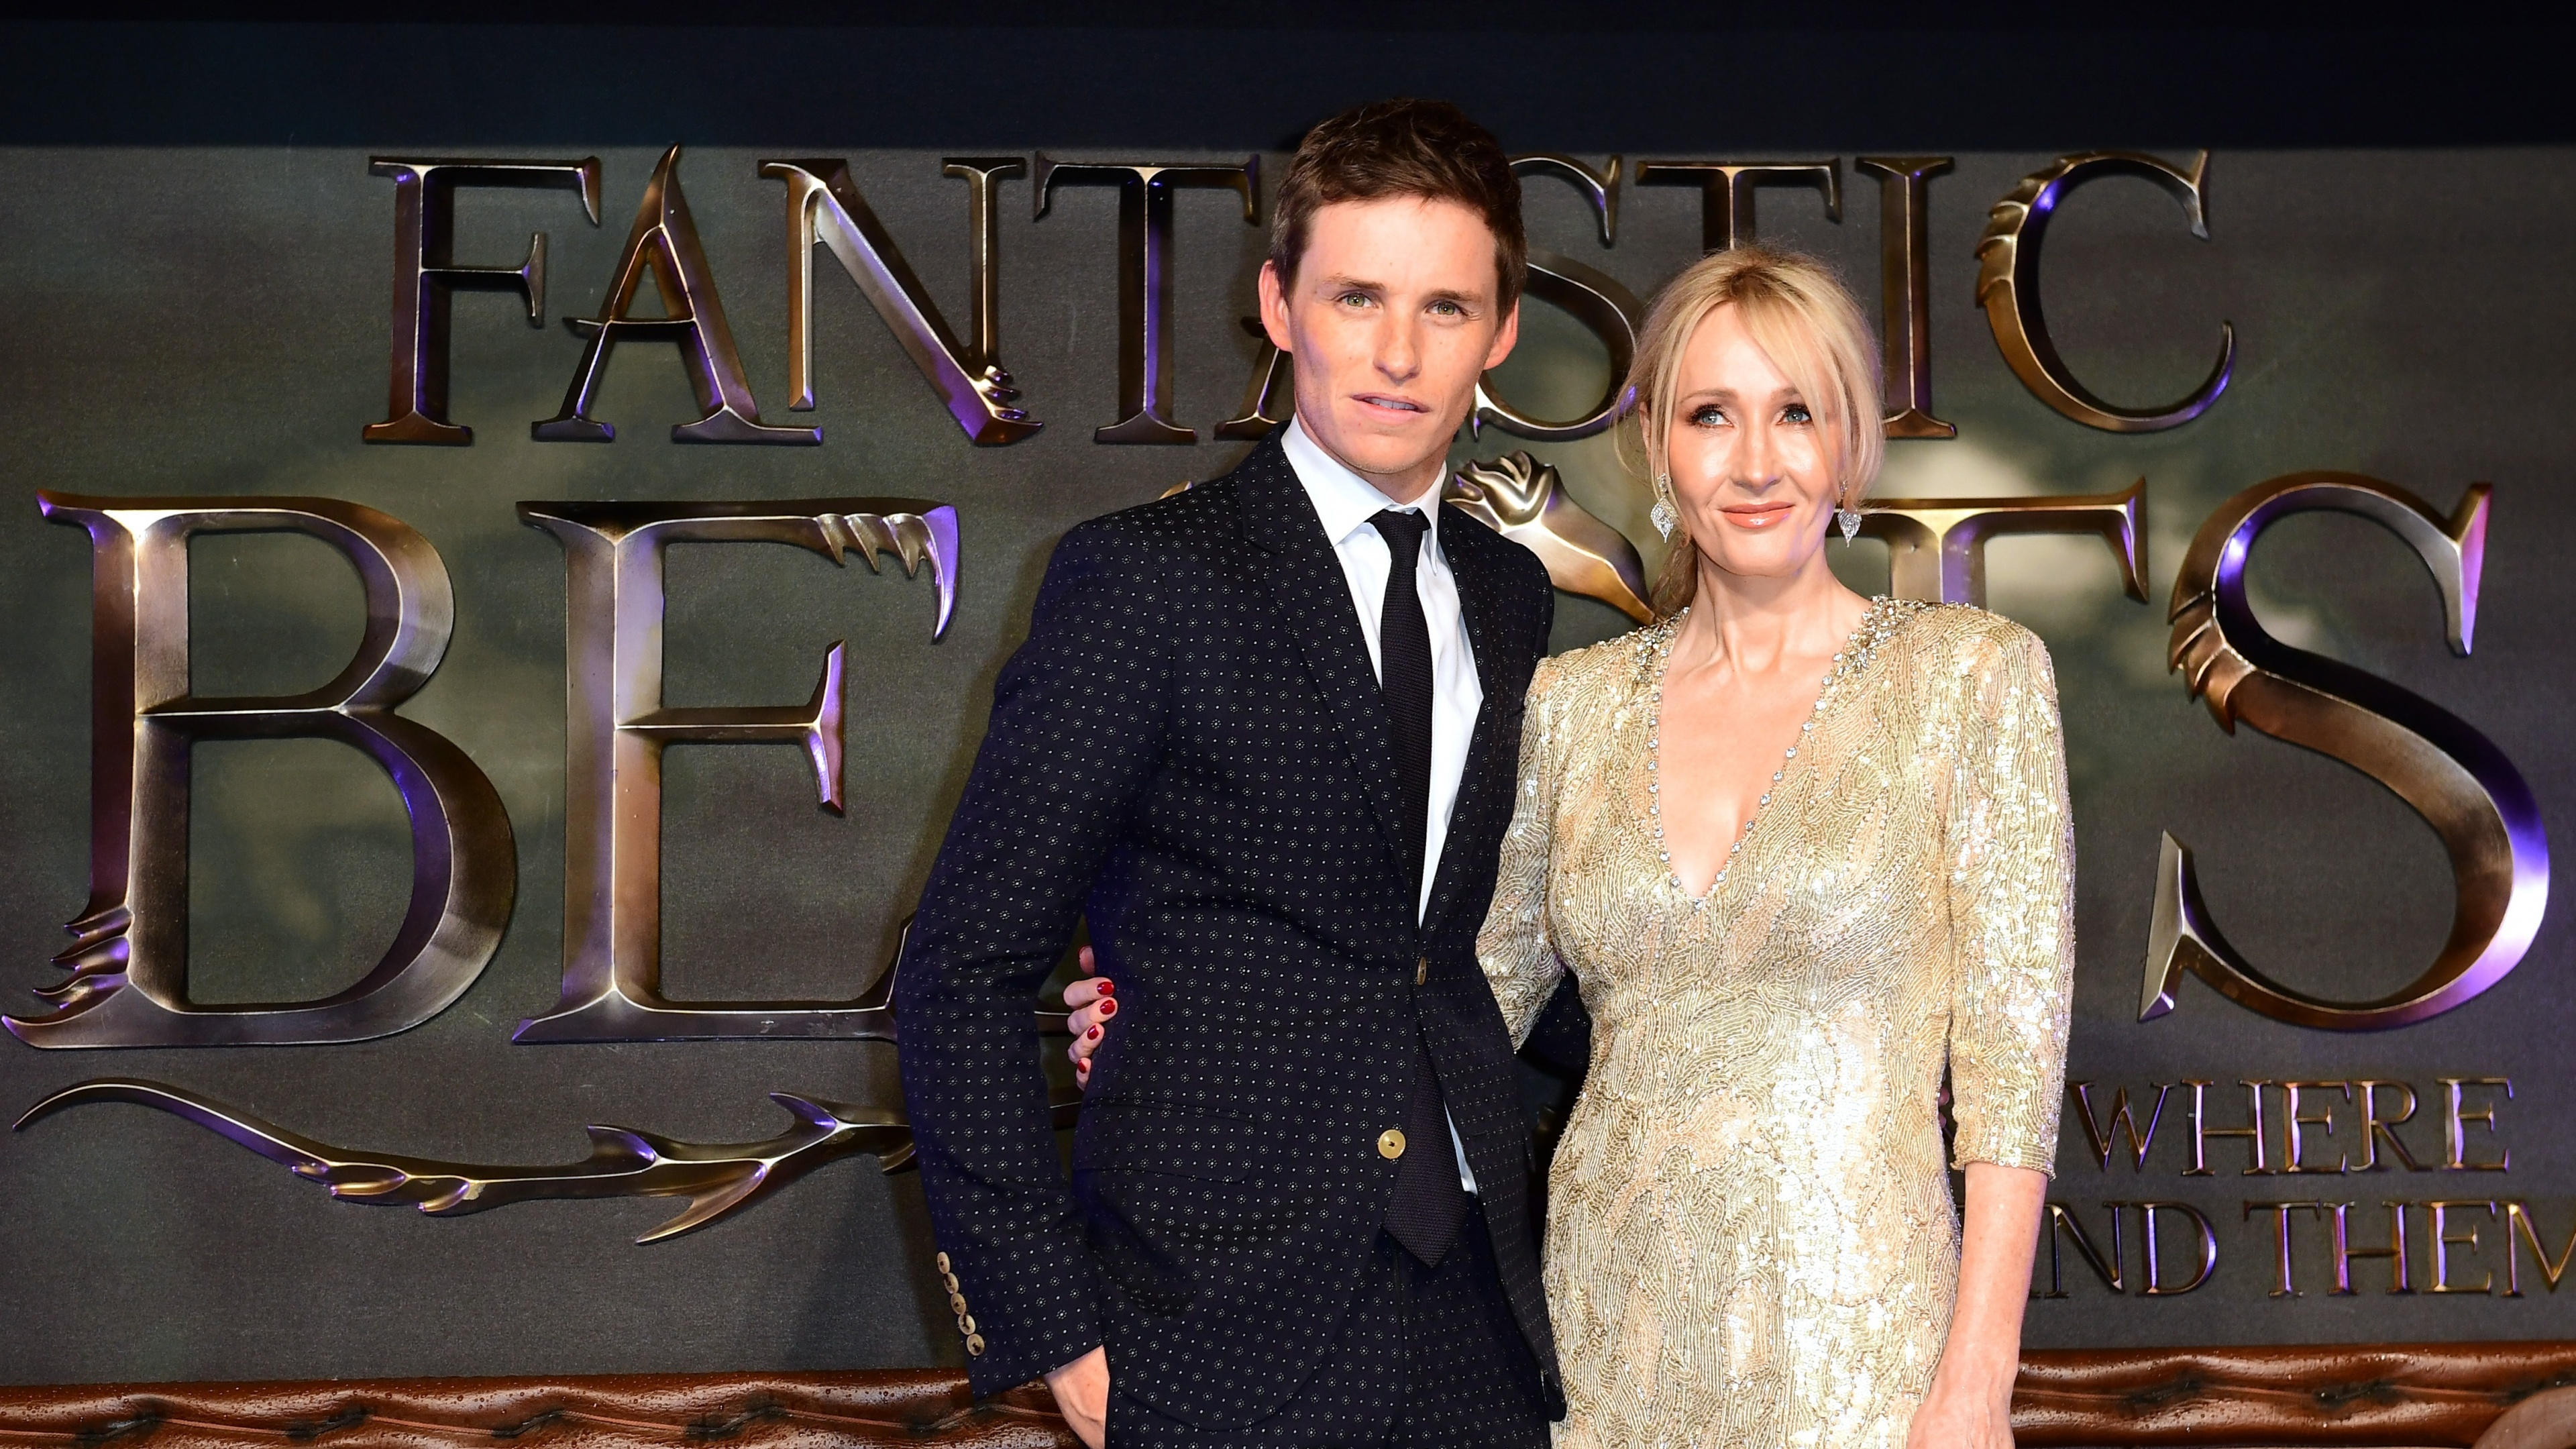 Eddie Redmayne and JK Rowling at Fantastic Beast Premiere. Harry Potter fans could be in with a chance of starring in the sequel